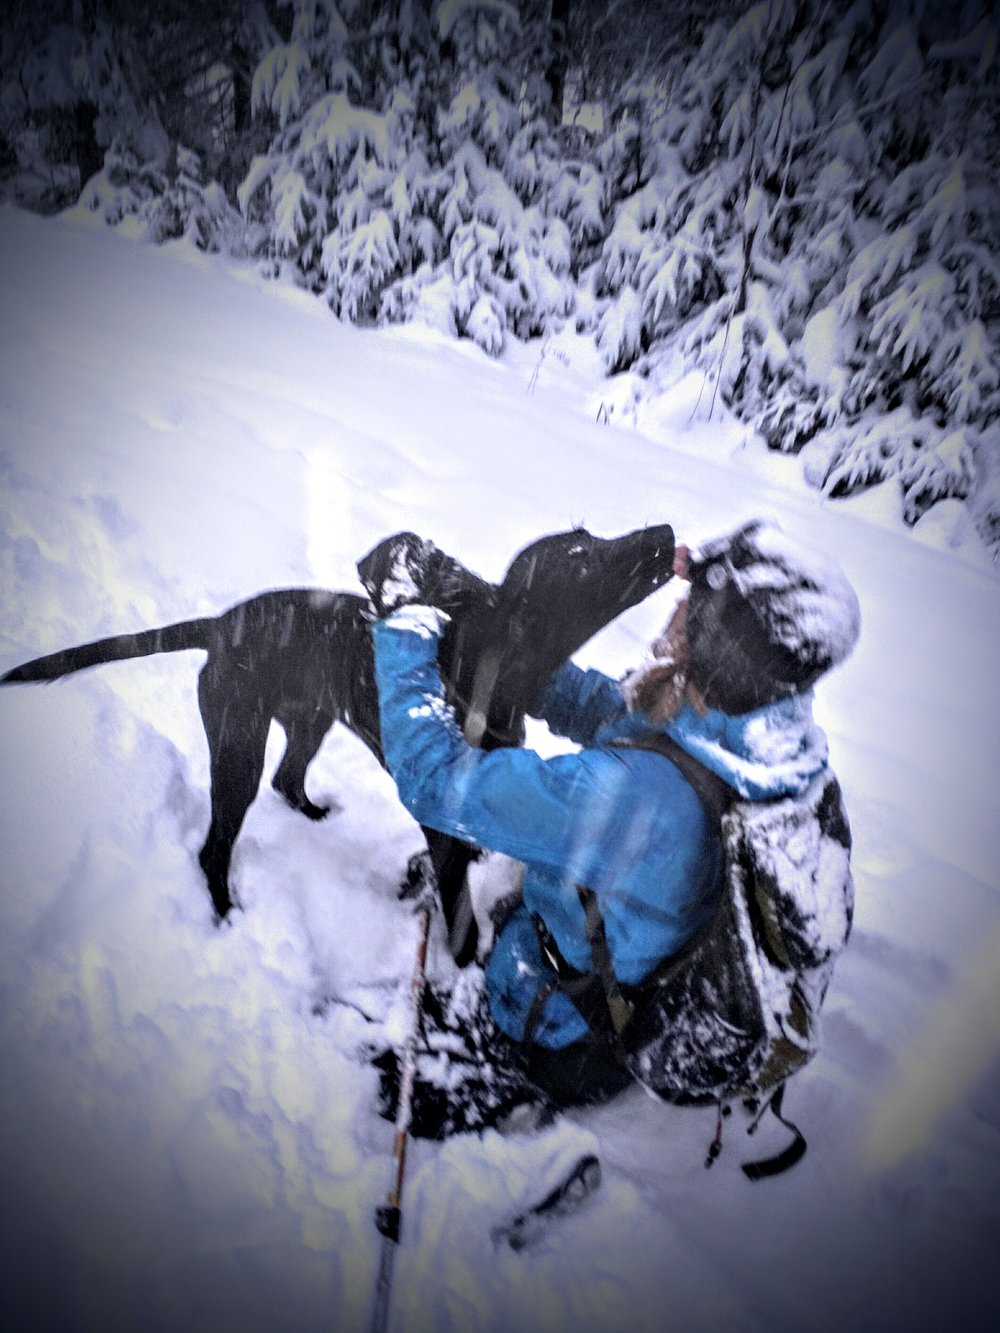 Doggie kisses in the snow.